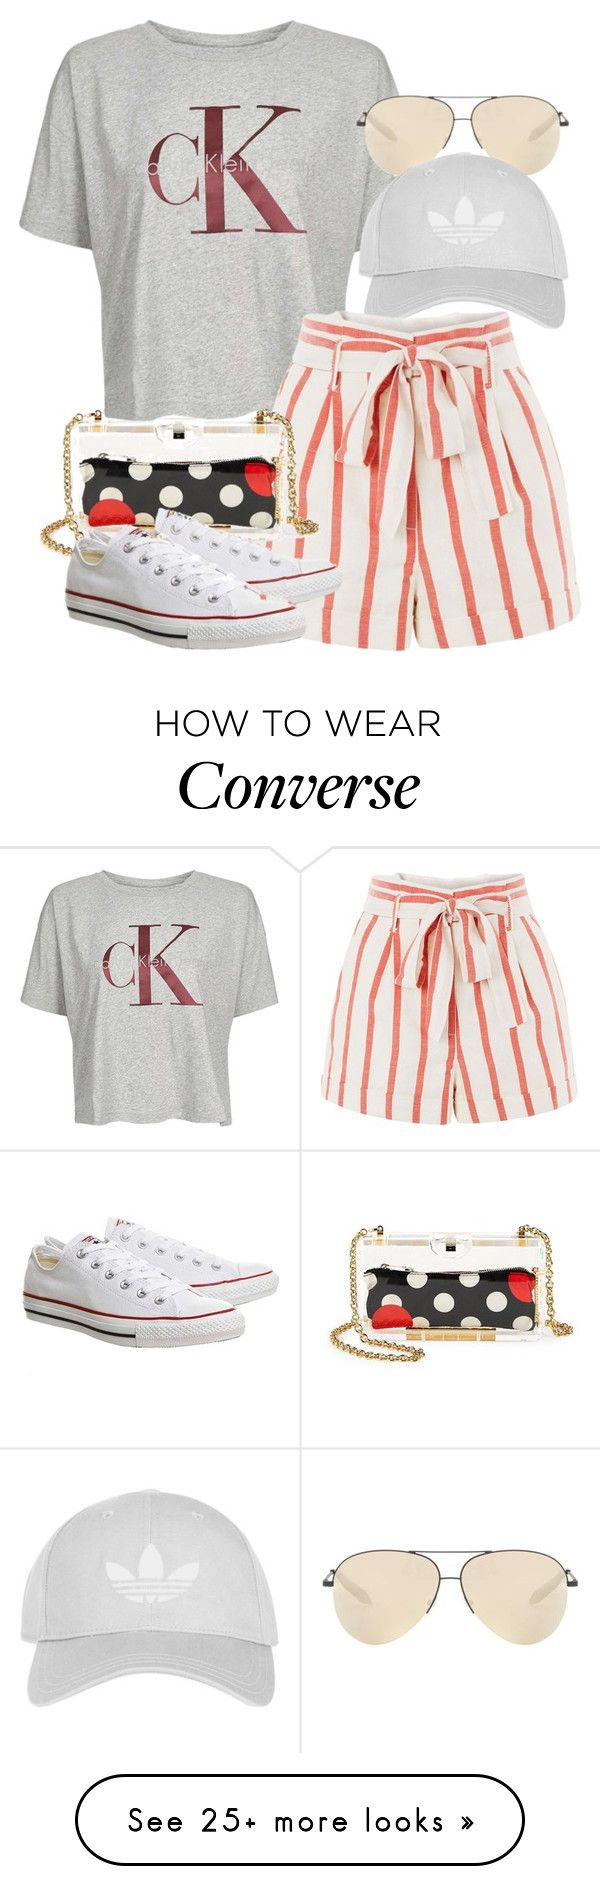 """""""Calvin Klein x Valentino"""" by muddychip-797 on Polyvore featuring Topshop, Victoria Beckham, RED Valentino, casual, valentino, vacation, CalvinKlein and fashionset"""